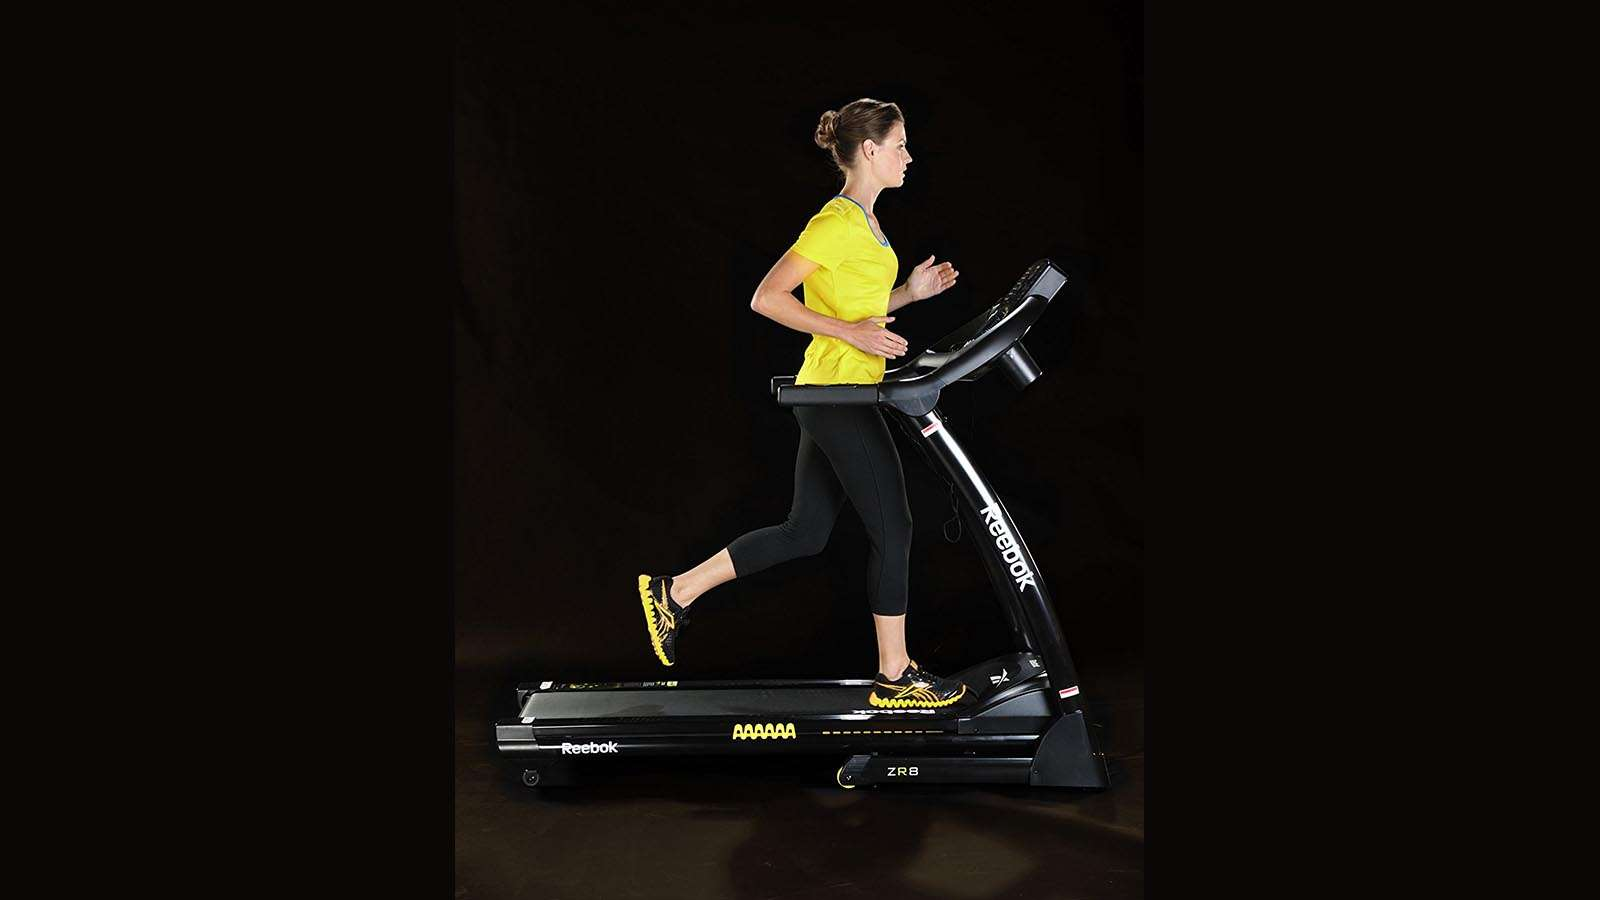 Reebok ZR8 Compact Treadmill review (black)